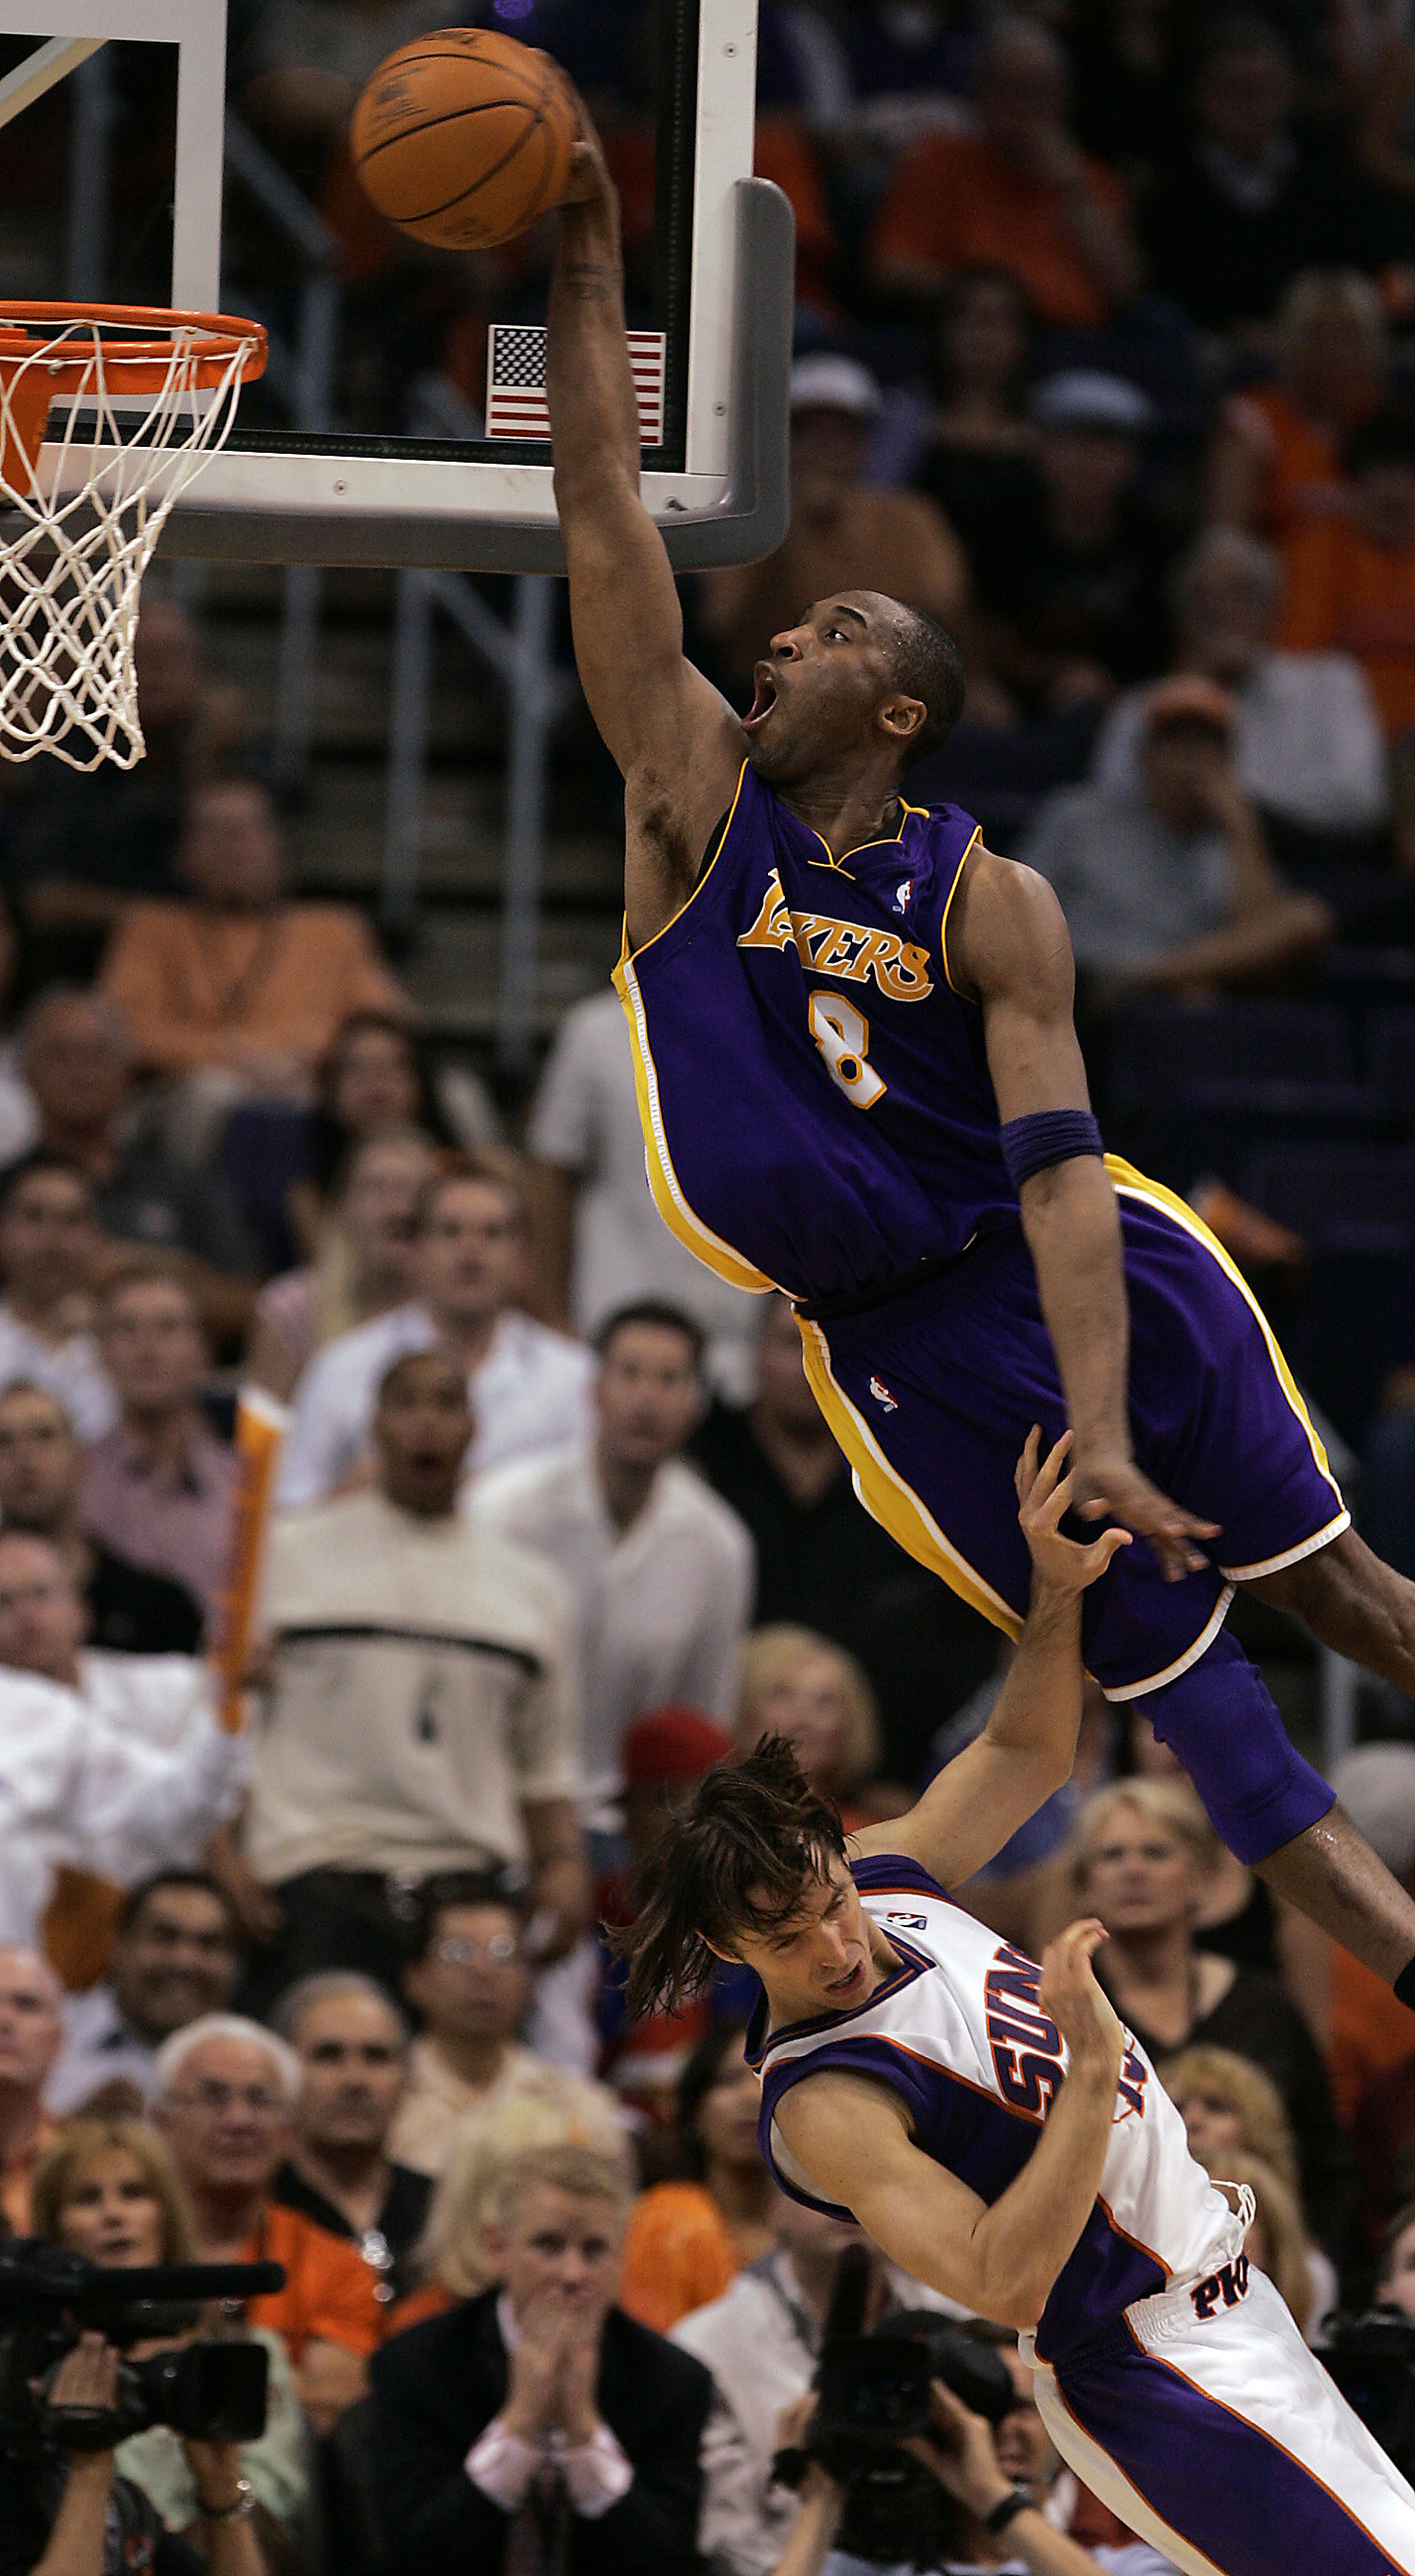 c3d73b3e997 Kobe Bryant goes for the dunk over the Phoenix Suns  Steve Nash in the  fourth quarter with emphasis in game two of the NBA Western Conference  quarterfinals ...